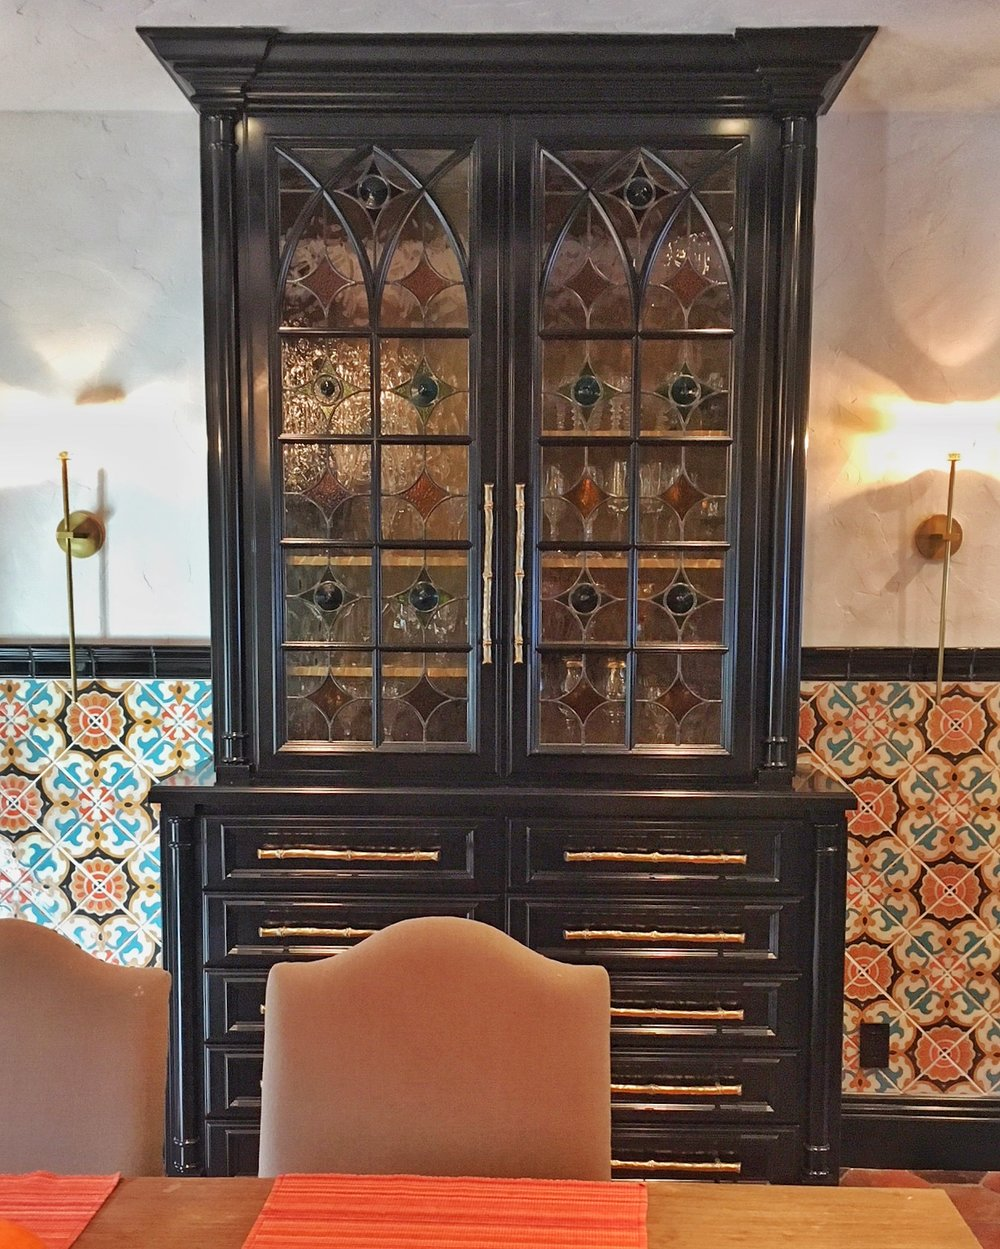 traditional pattern geometric classic design rondel spanish design gothic arched cabinet door leaded glass stained glass legacy glass atherton san jose menlo park san francisco california hutch spanish tile kitchen.jpg